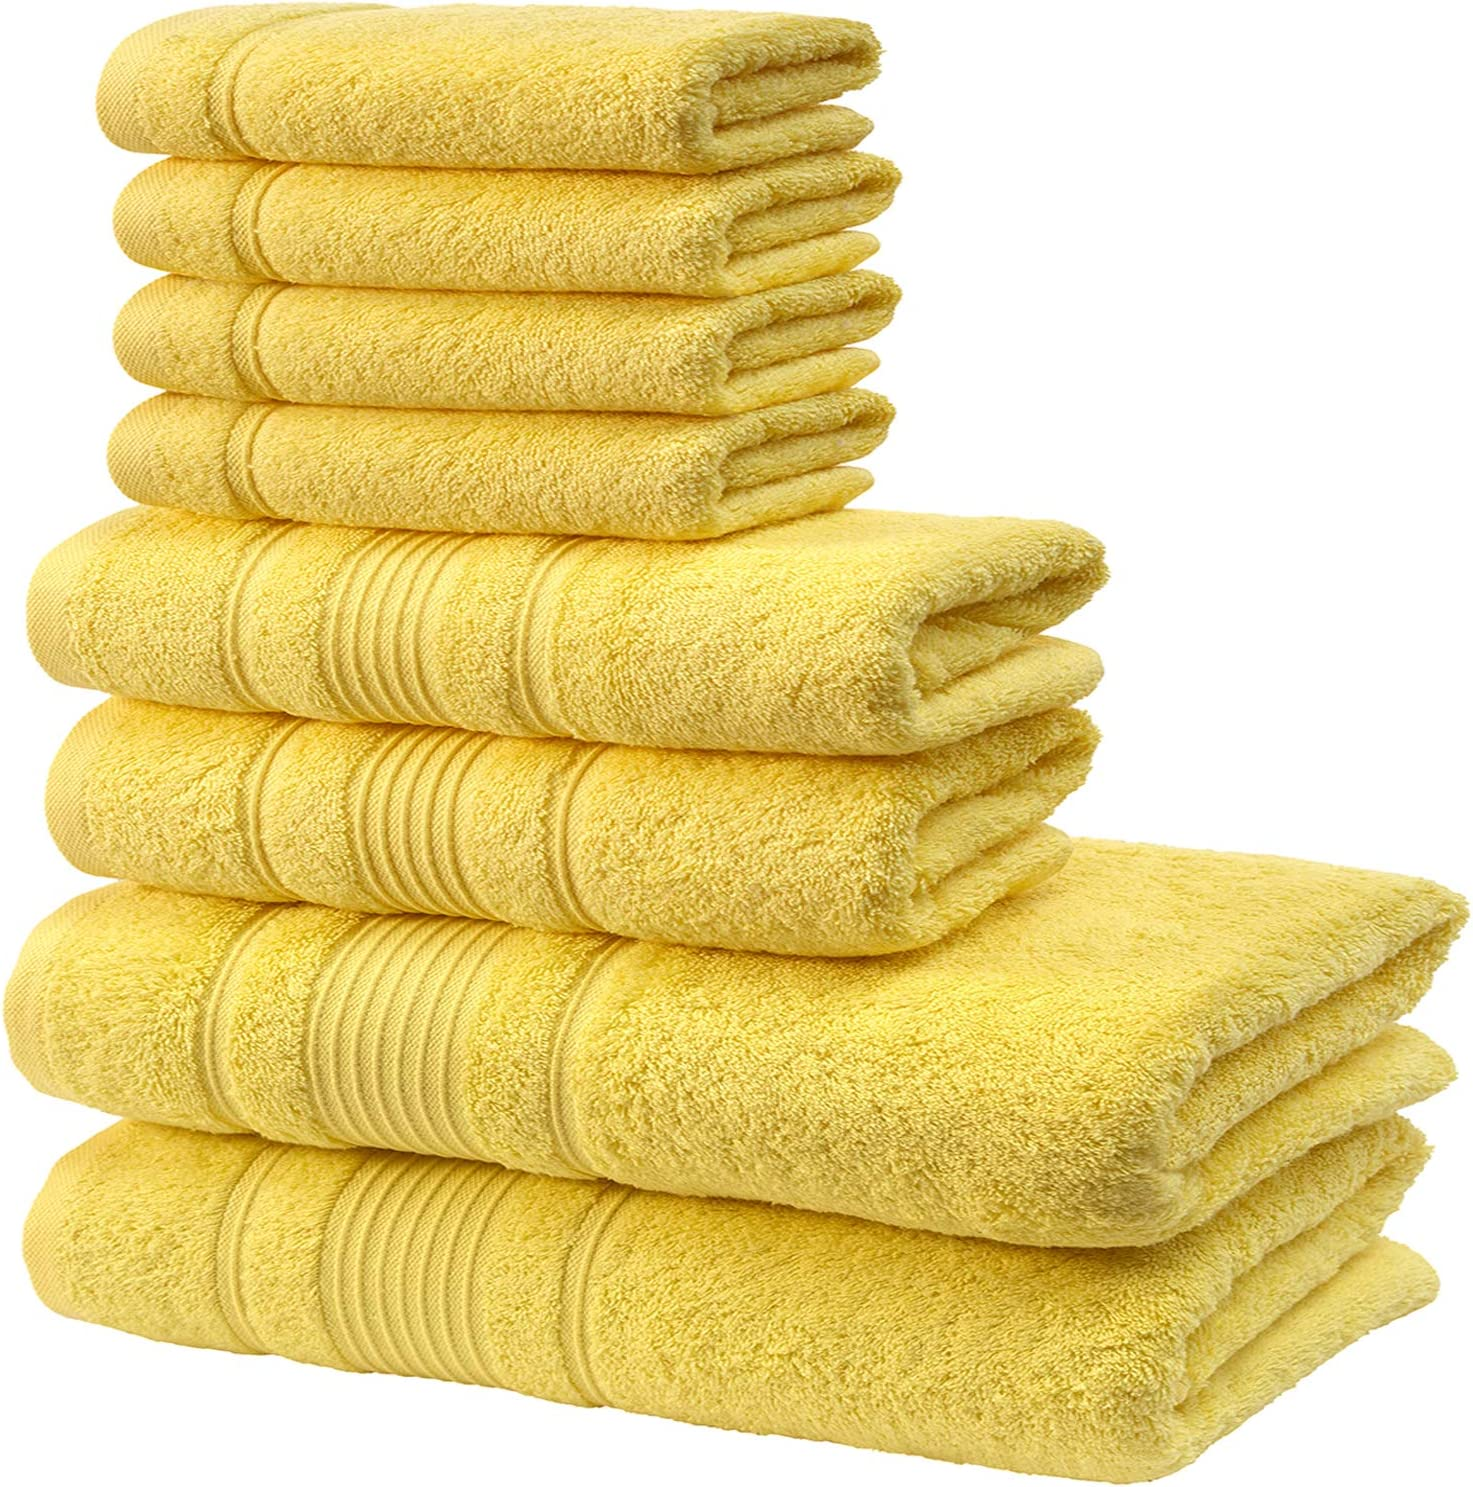 Qute Home Towel Set; Bath Towels, Hand Towels and Washcloths | Spa & Hotel Towels Quick Dry 100% Turkish Cotton Towel Sets for Bathroom, Shower Towel (Yellow, Towel Set - Set of 8)